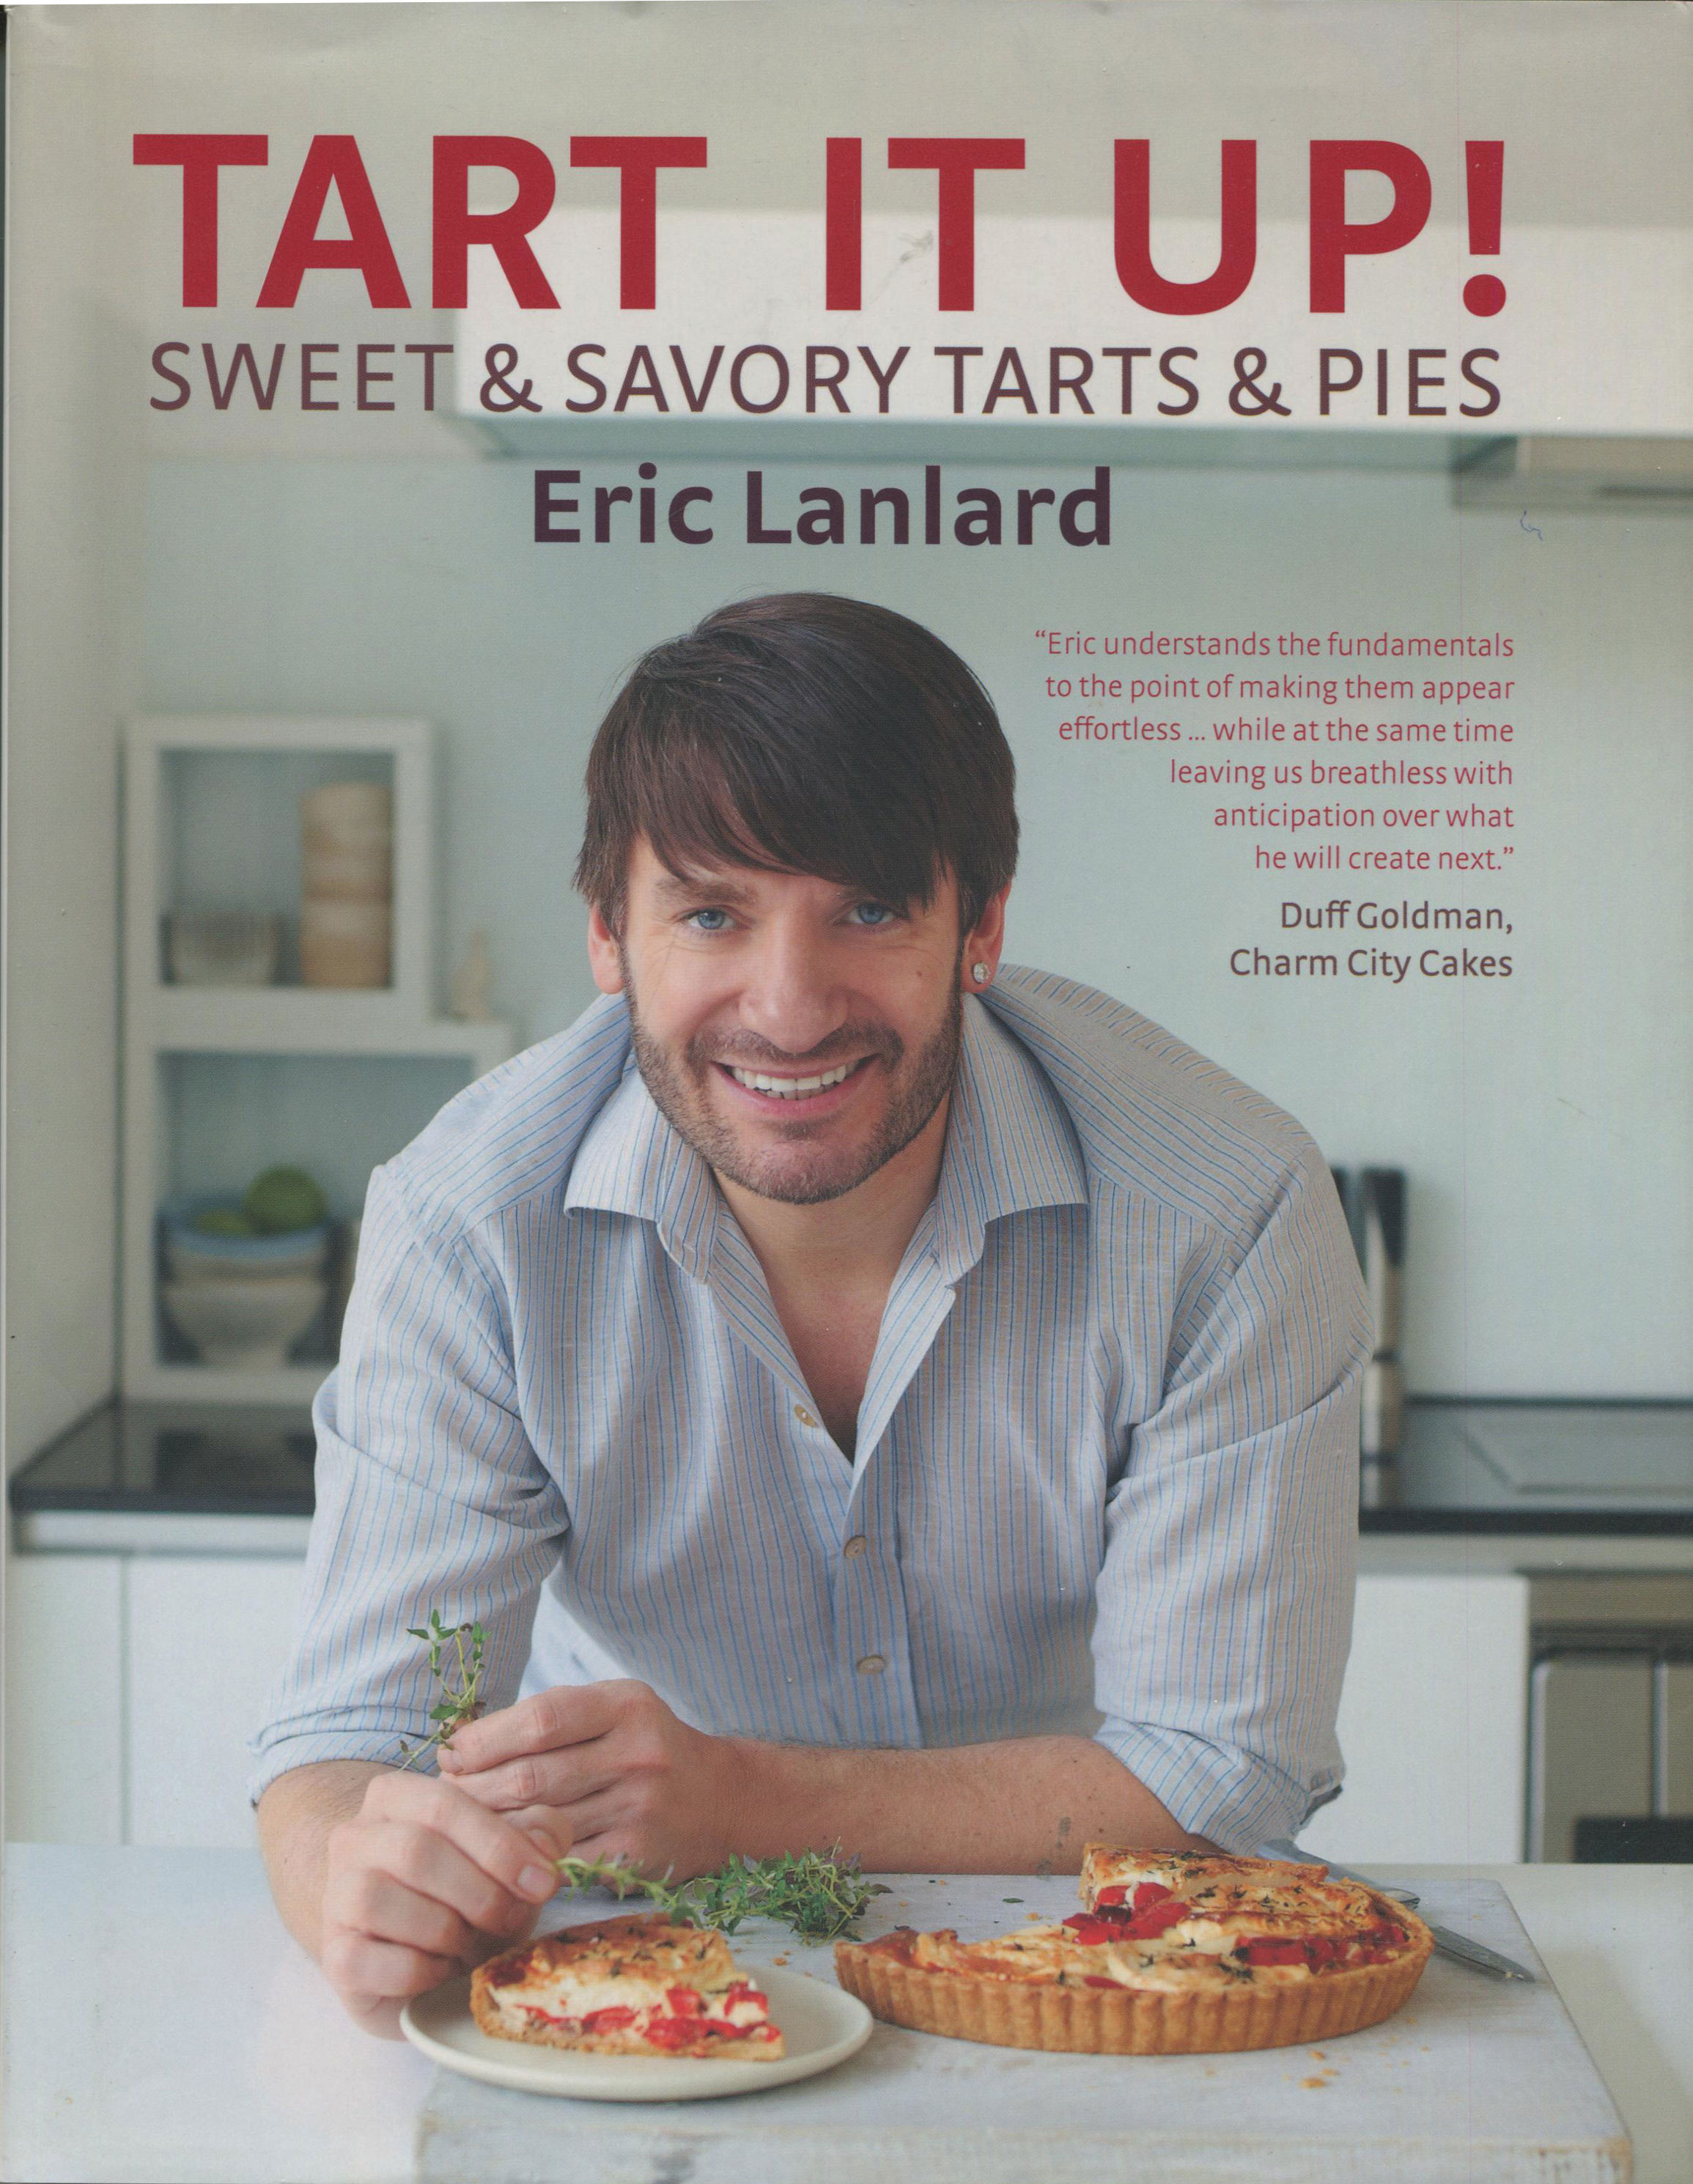 TBT Cookbook Review: Tart It Up!